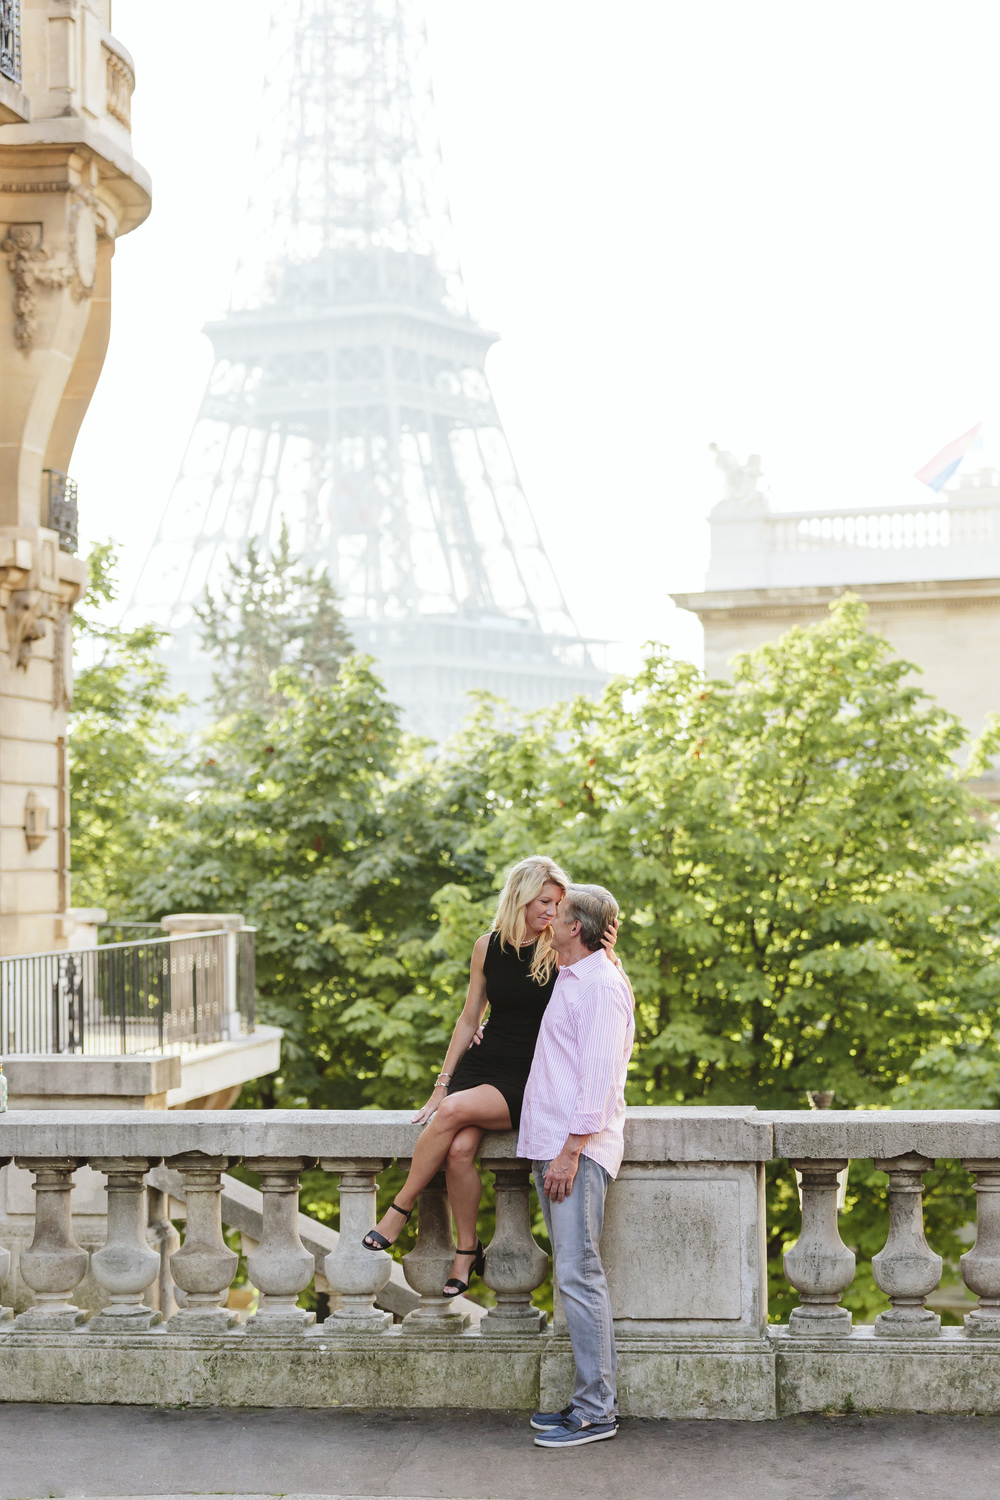 couple session portrait at passy by the eiffel tower captured by photographer in paris